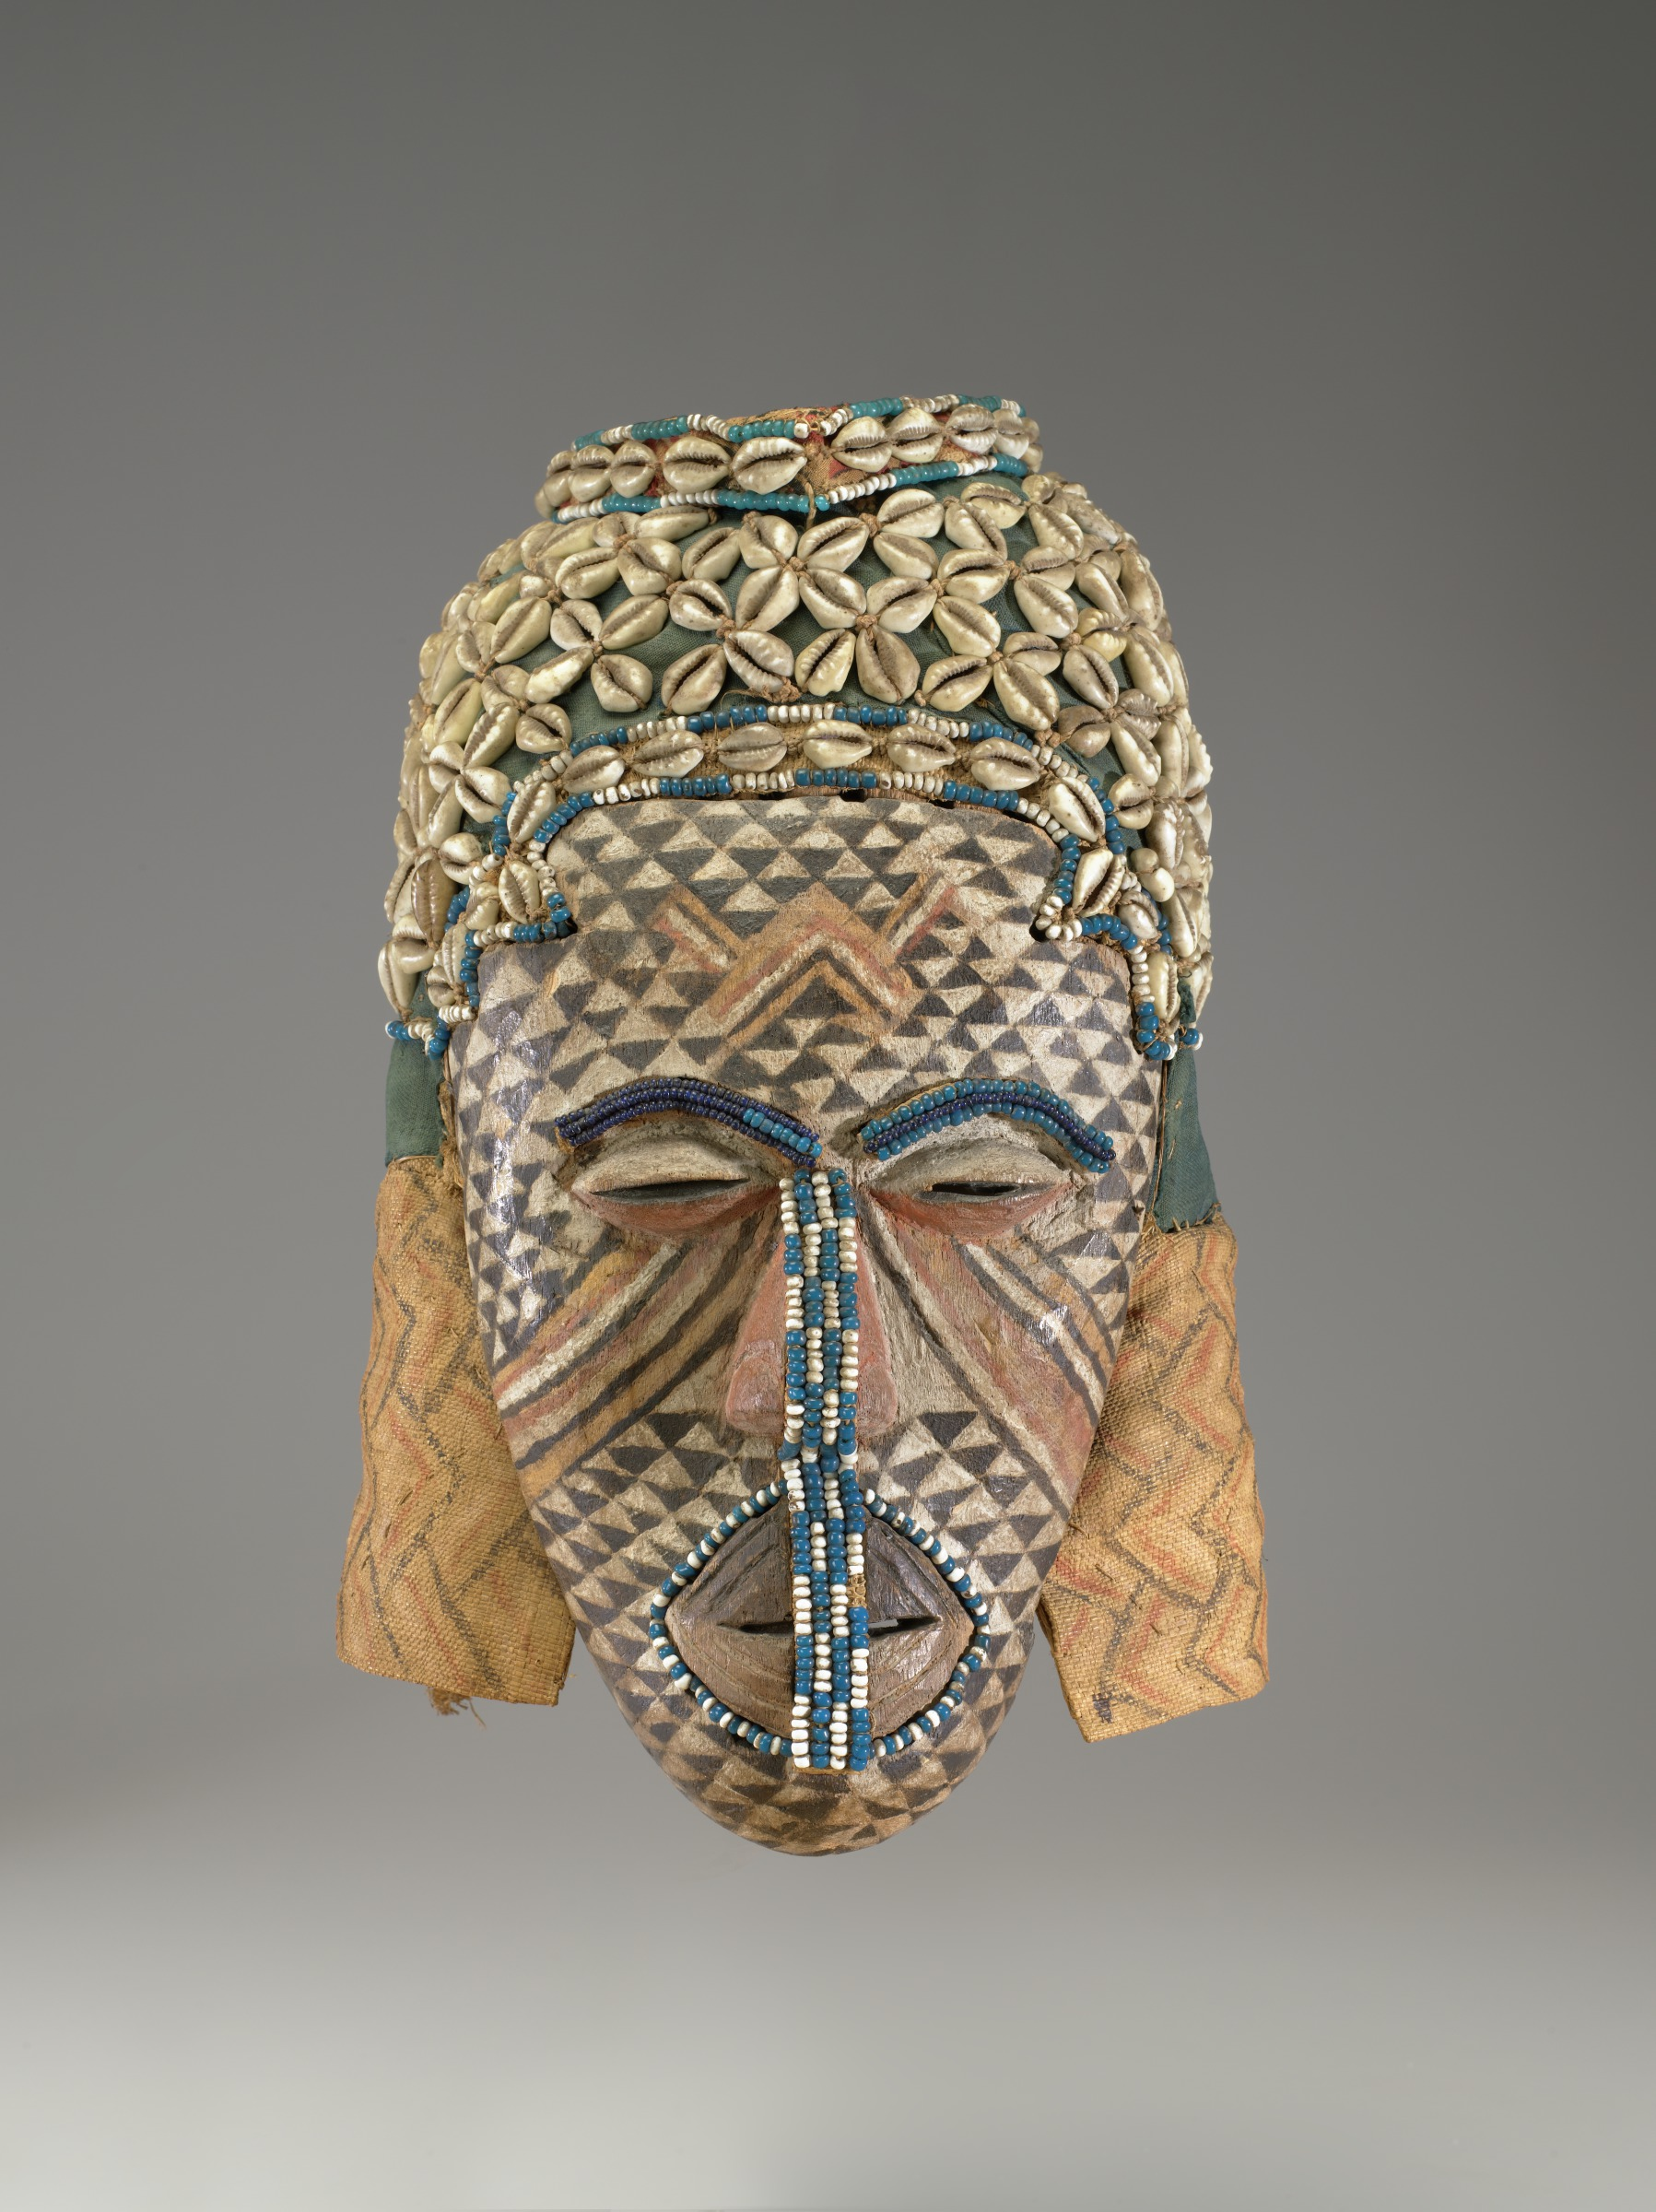 Gallery Guide: Art from the Congo in VMFA's Collection